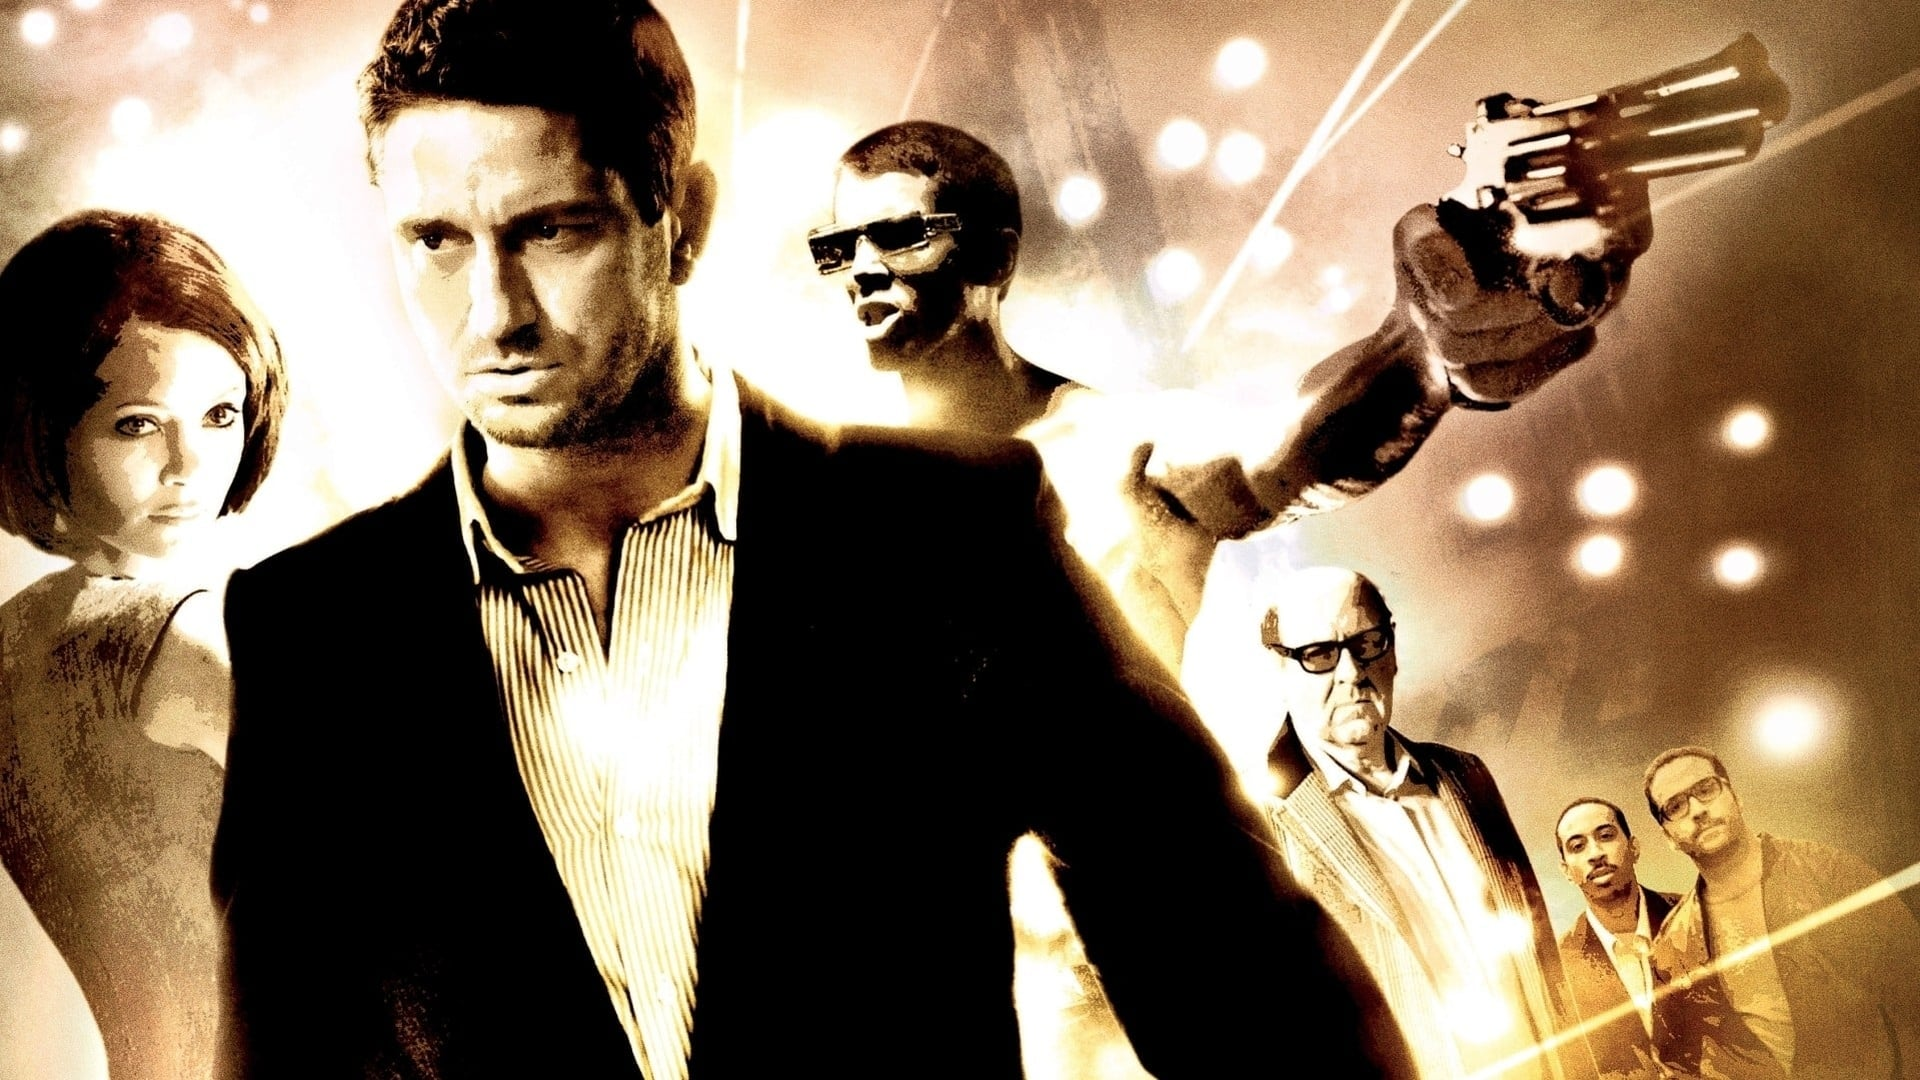 Watch RockNRolla (2008) Full Movie - Openload Movies